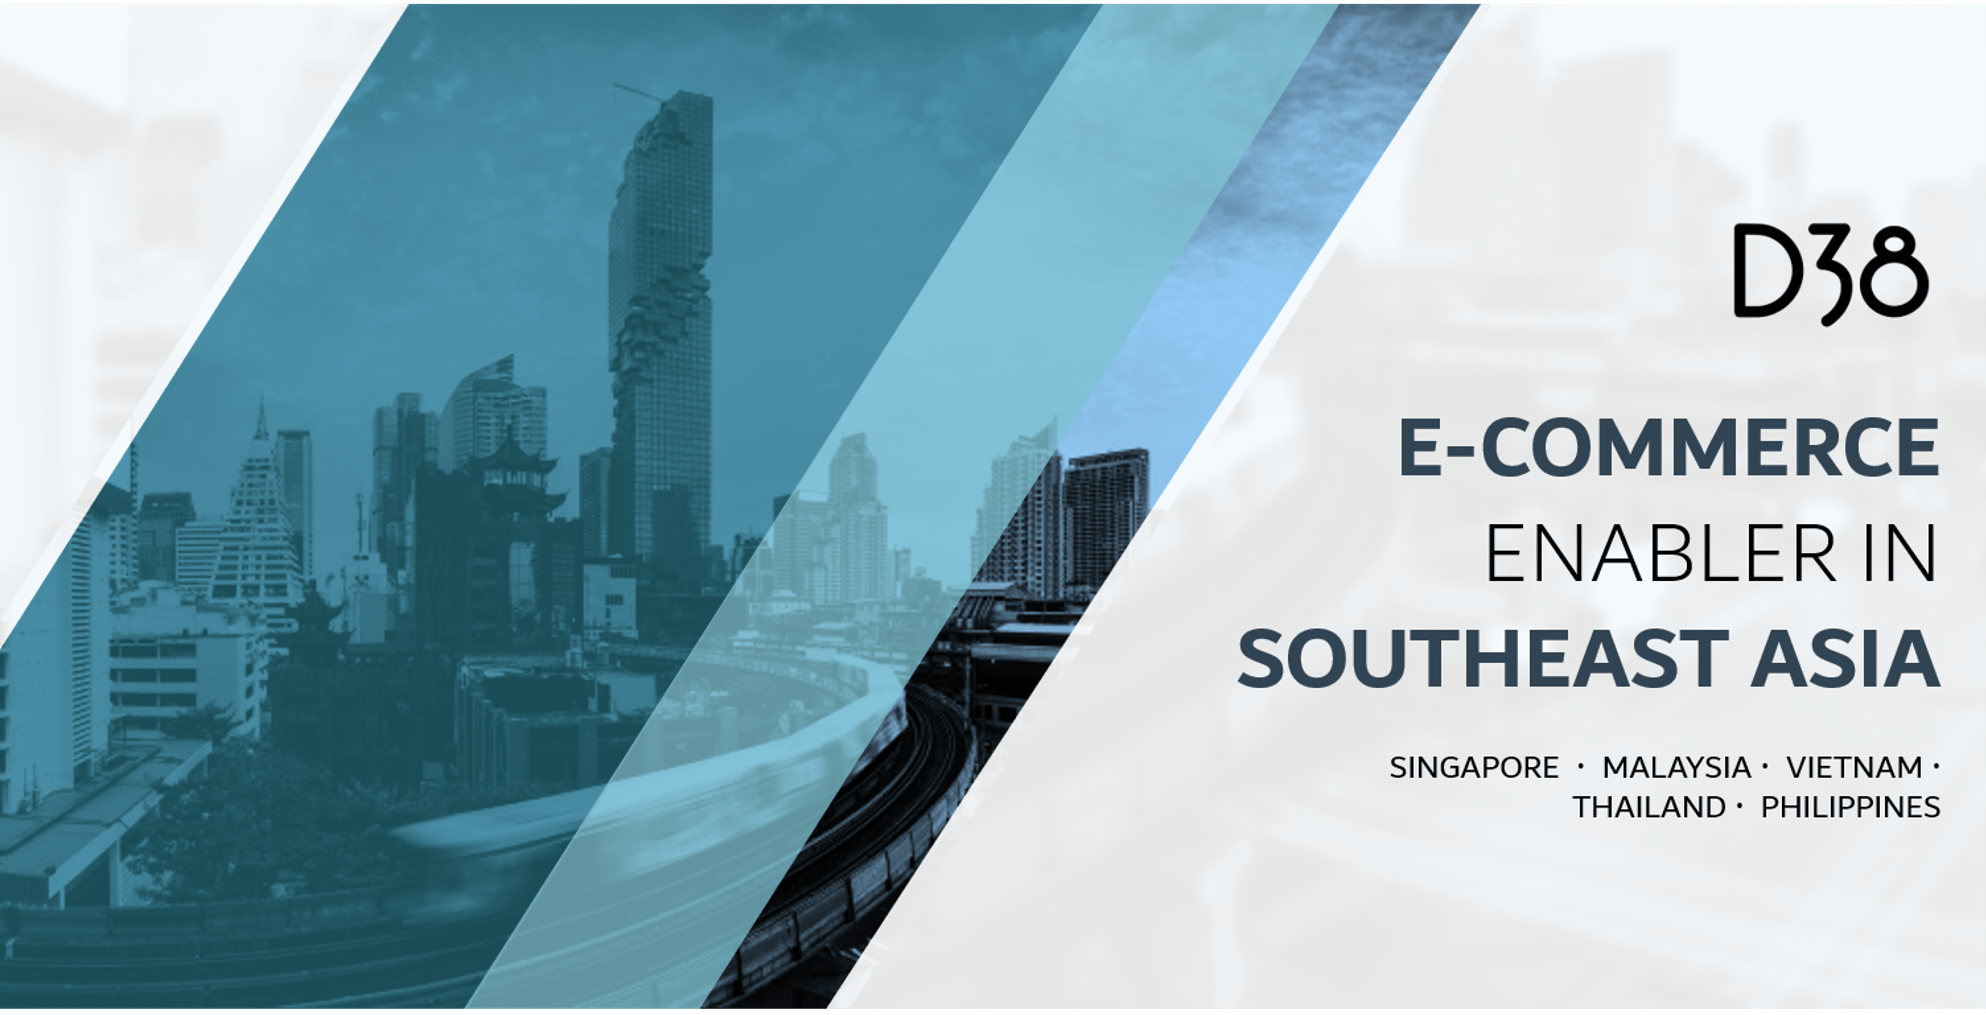 Digital 38 Ecommerce in Southeast Asia